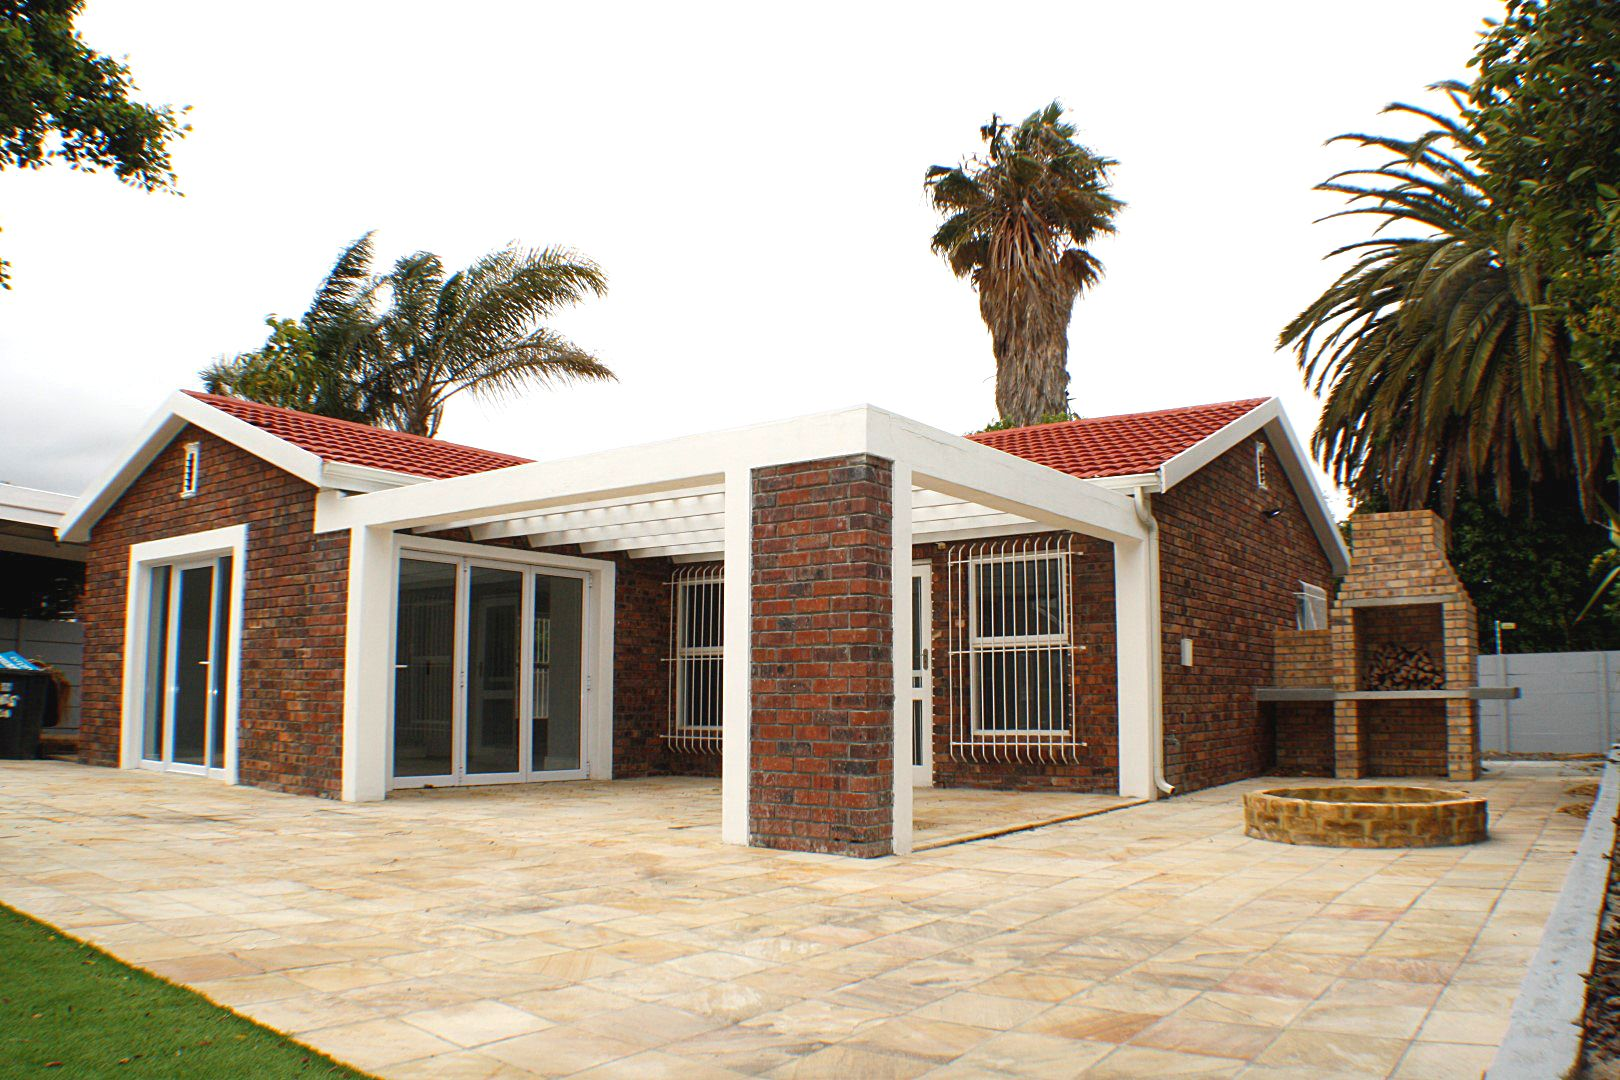 3 Bedroom House for sale in Table View ENT0067631 : photo#8